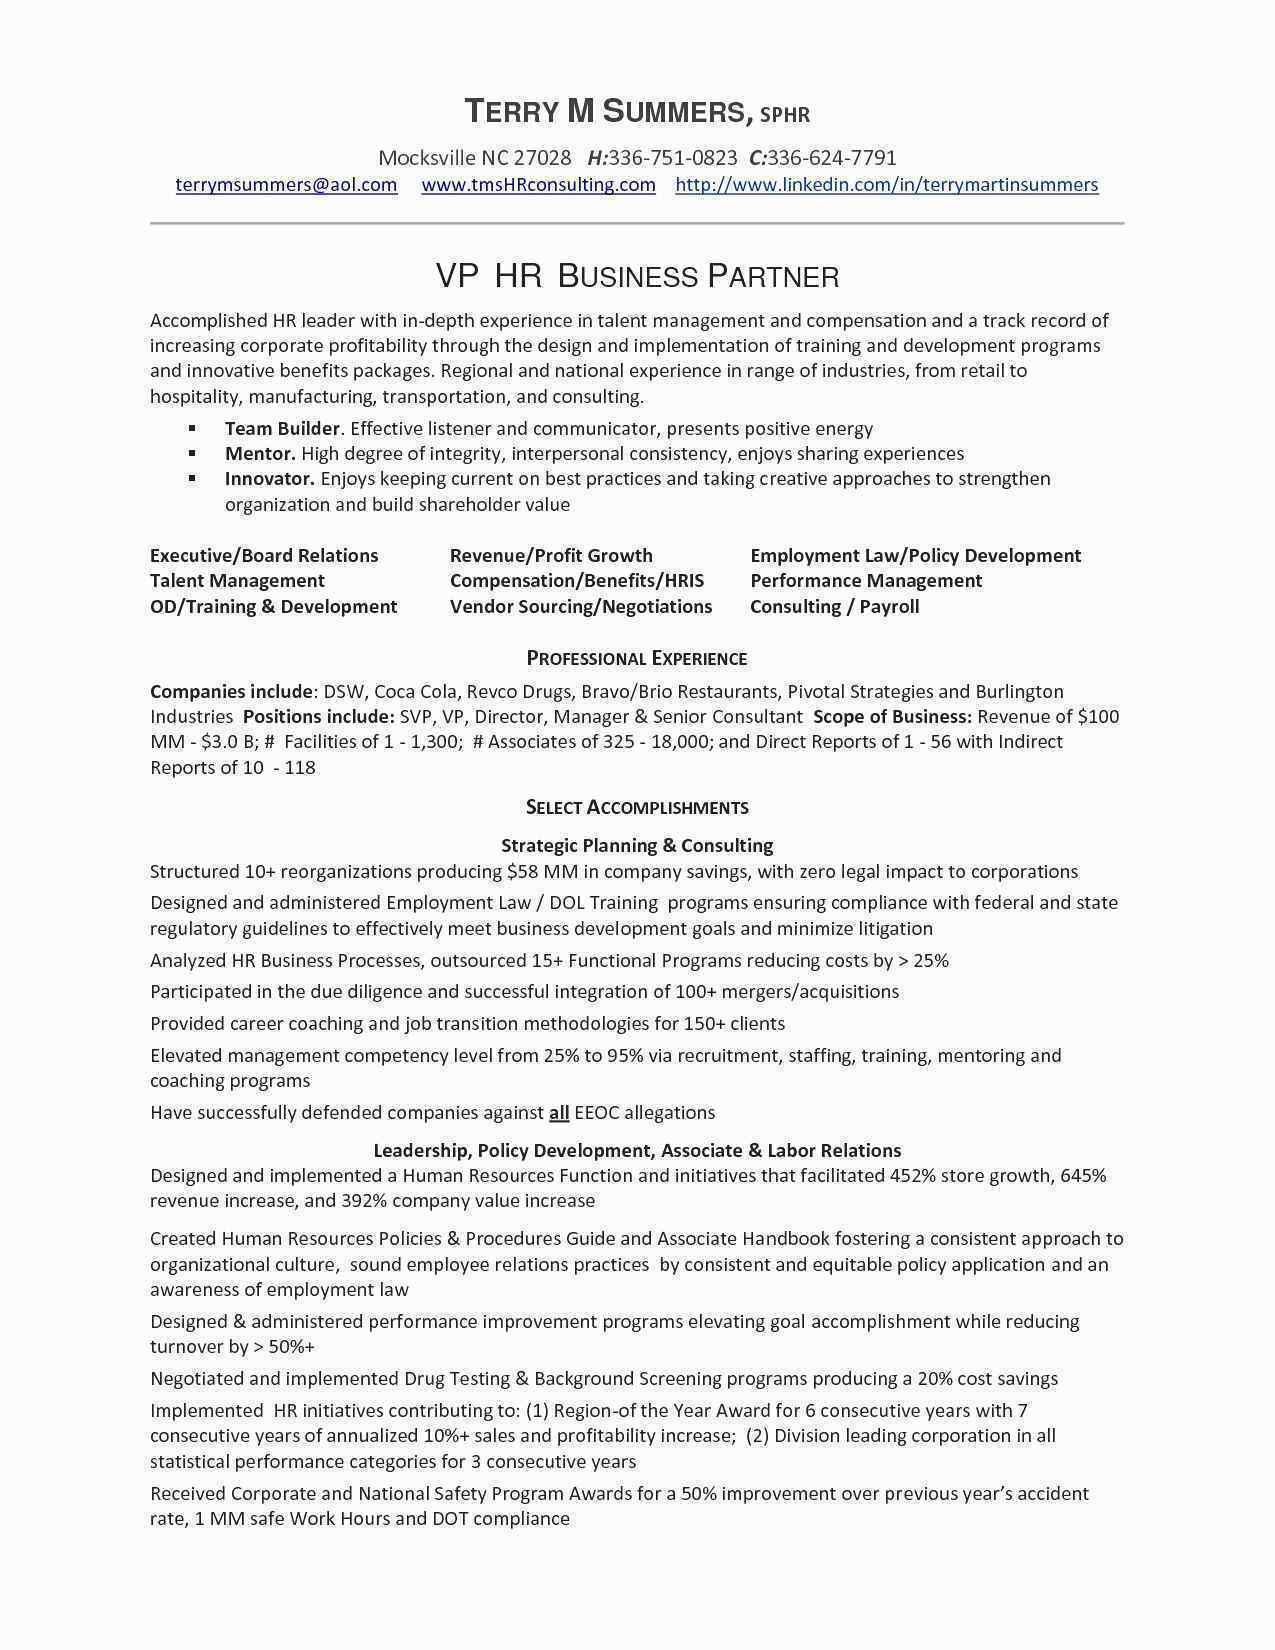 ford auto resume example-Ford Motor pany Jobs Resume Download Free 43 Luxury Cover Letter for Airlines Resume Cover Center 10-a